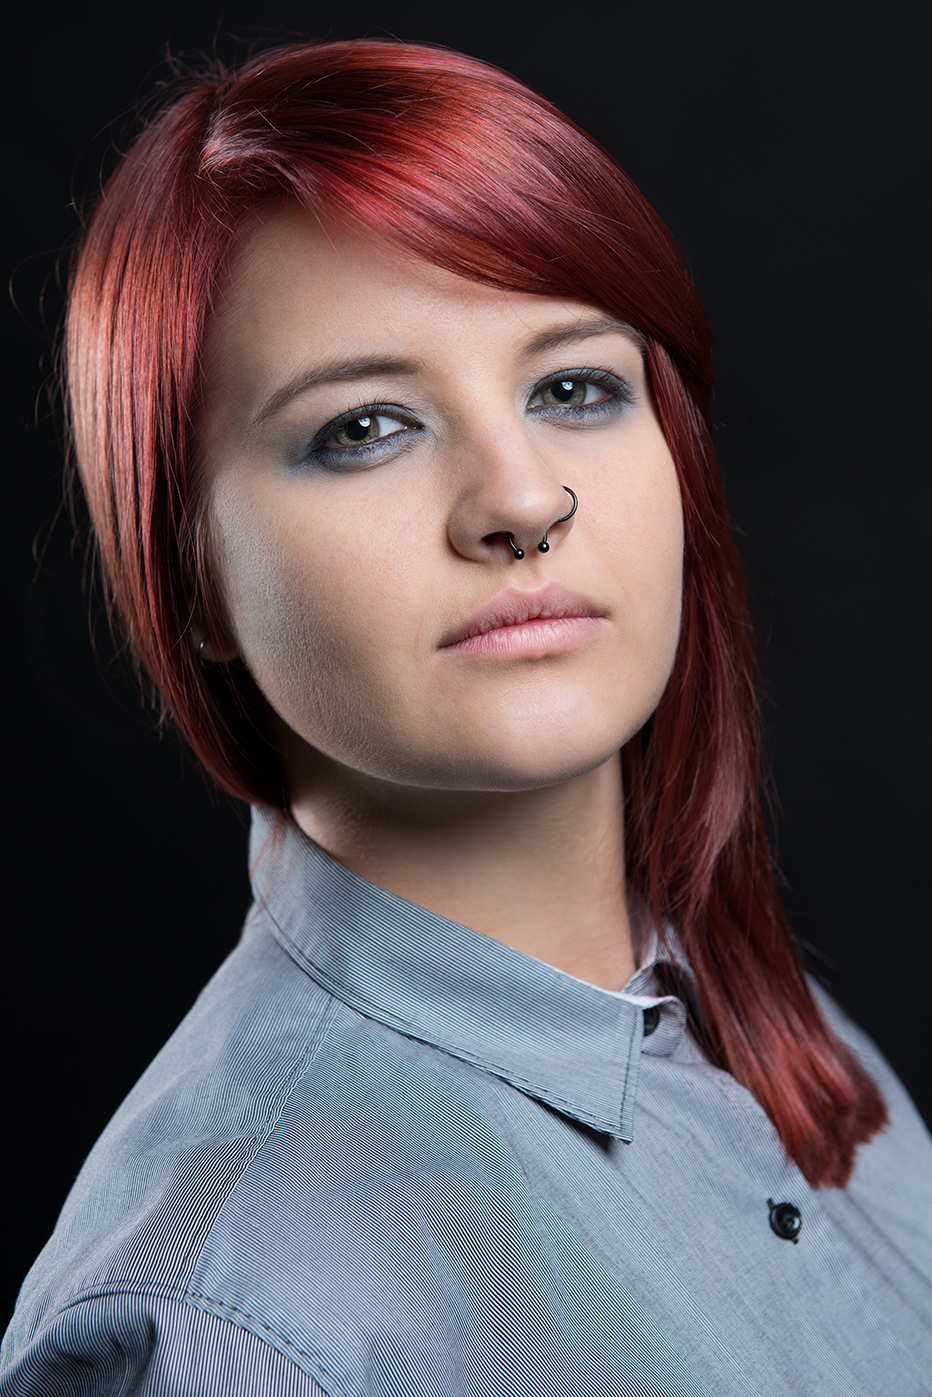 Womens headshot